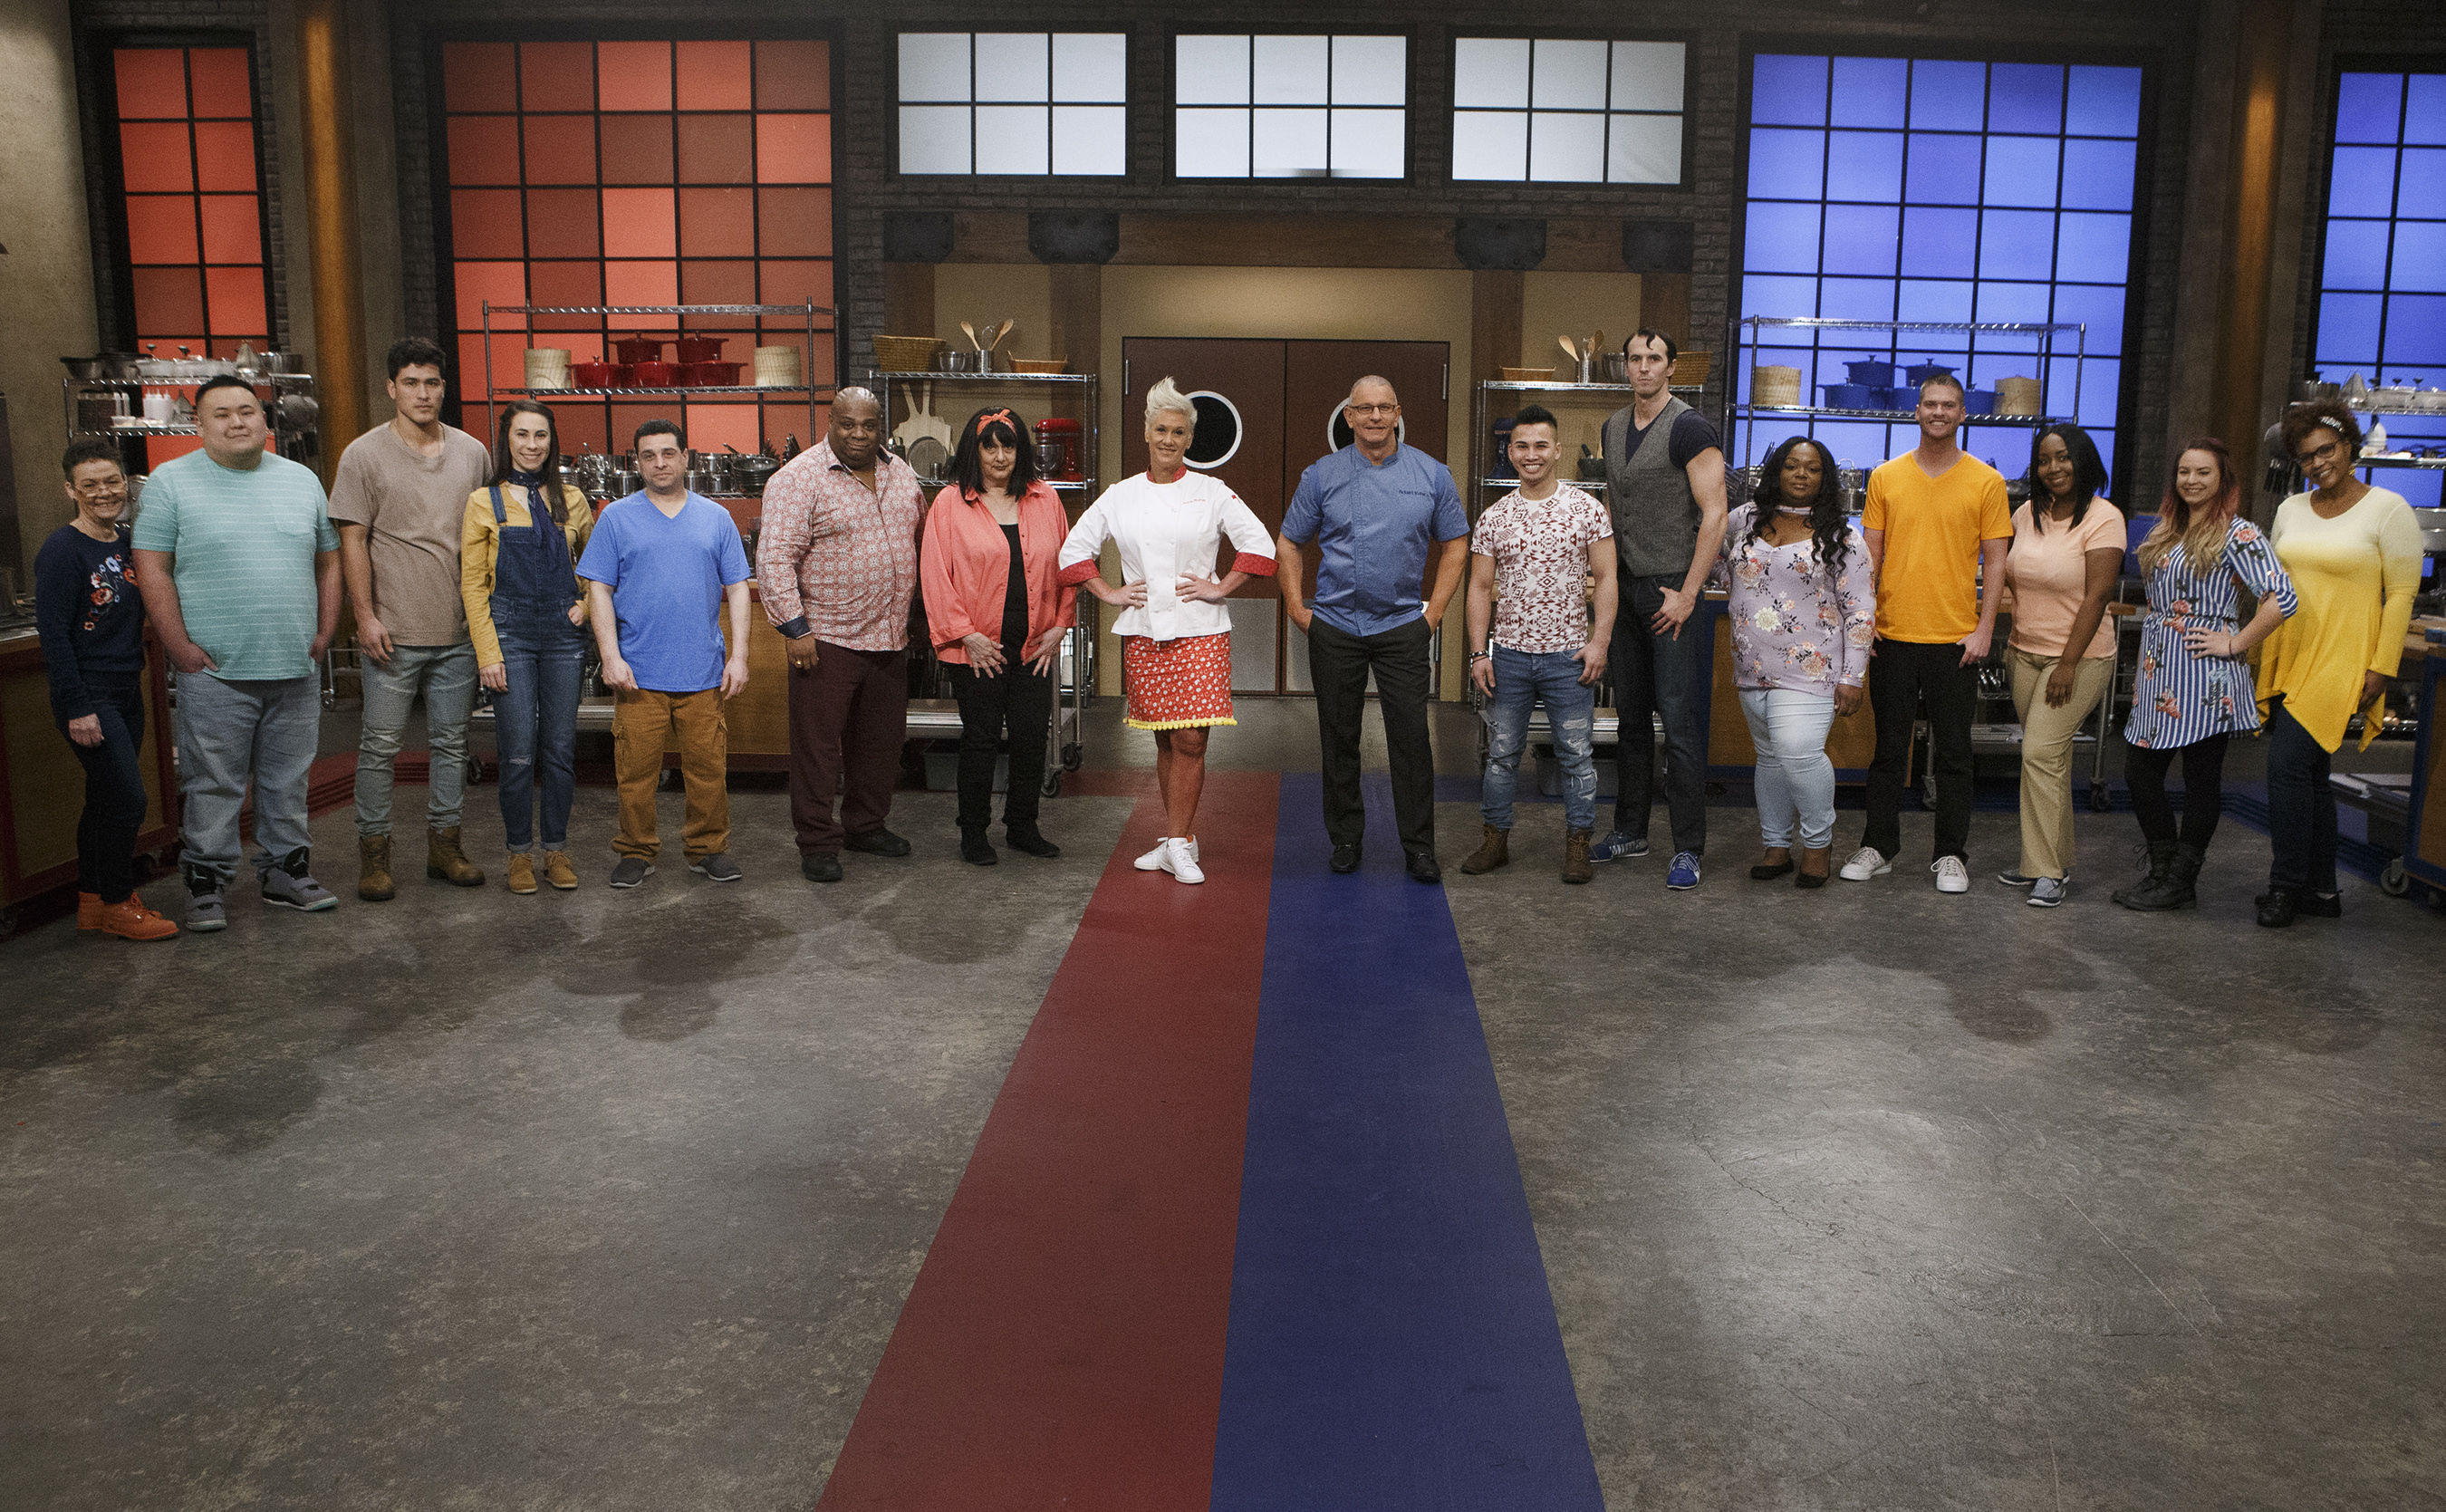 Mentors Robert Irvine and Anne Burrell pose with recruits Linda Martin, Rudy Rehberg, Bradley Garcia, Sarah Harris, Frank Scuderi, Marcus Ellis, Maryann Rapisarda, Timmy Thok, Robbie Deraffele, Janese Henry, Copan Combs, Kimberly Worthy, Jessica Paulson and Carla Waddell, as seen on Worst Cooks in America, Season 14. Source: Daniela Medina, Allied Integrated Marketing